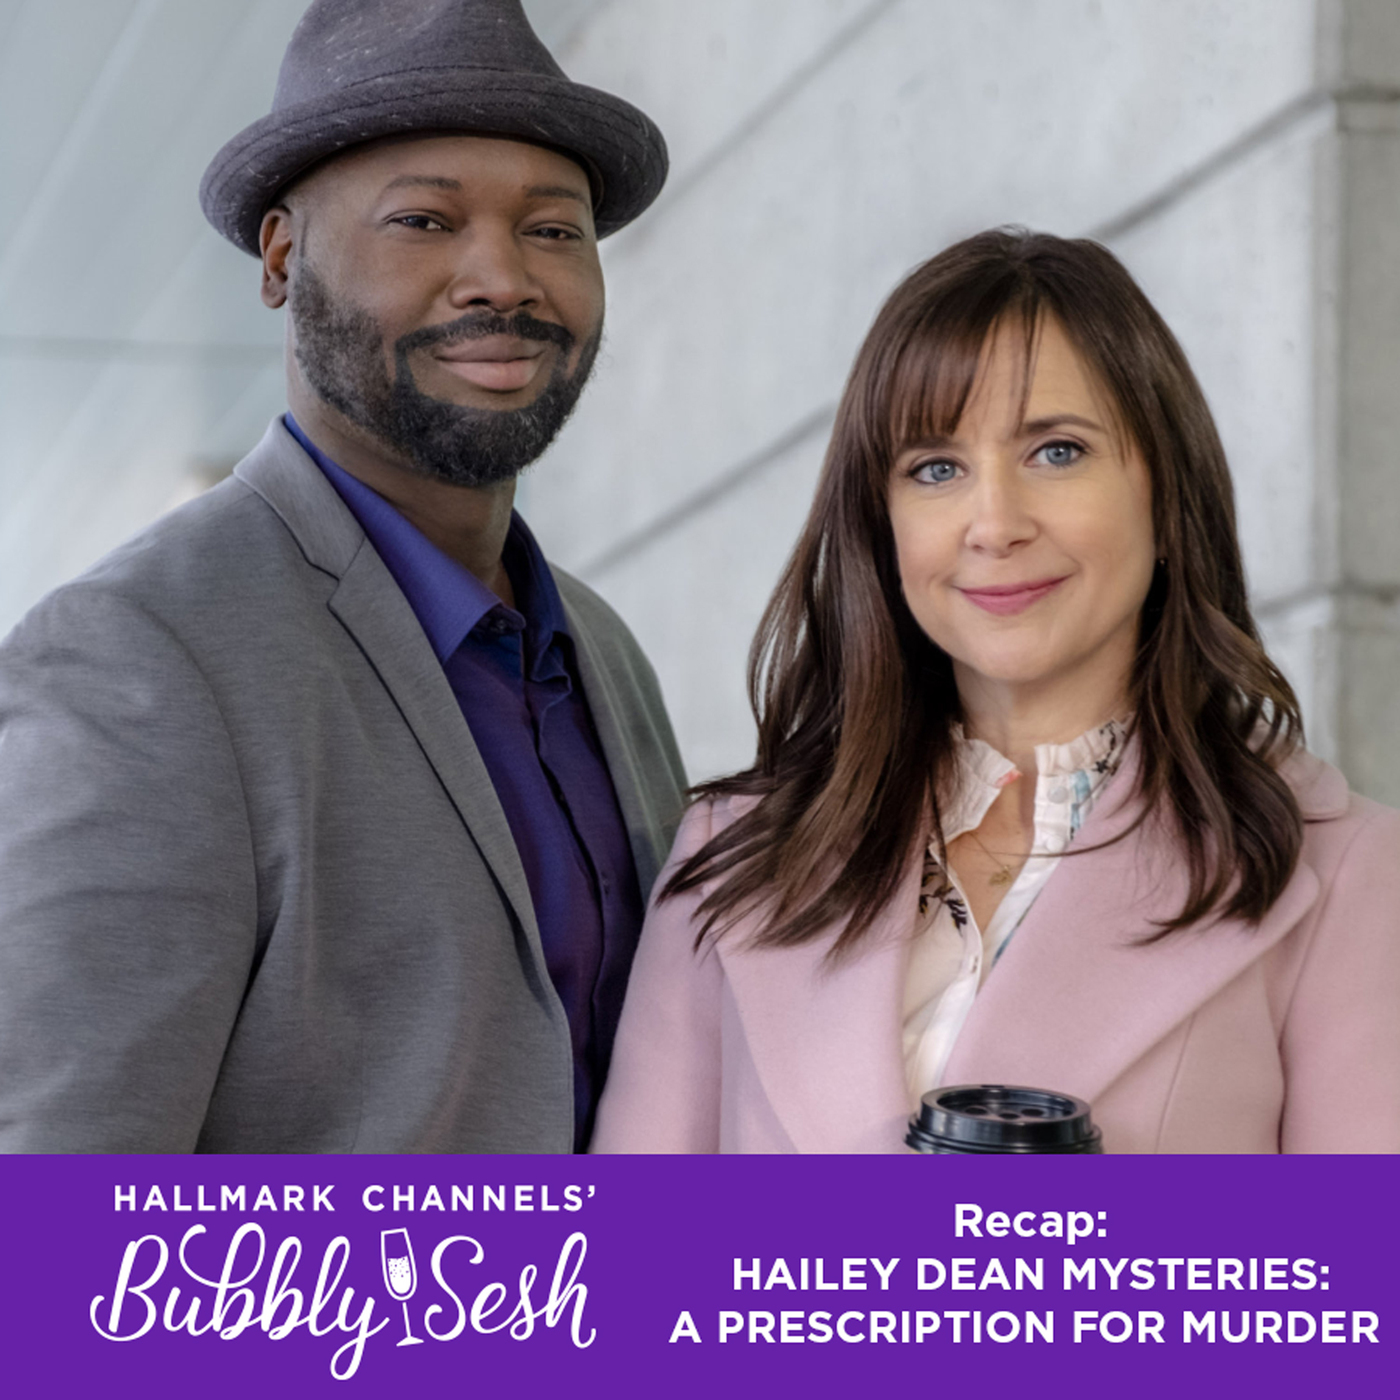 Hailey Dean Mysteries: A Prescription for Murder Recap